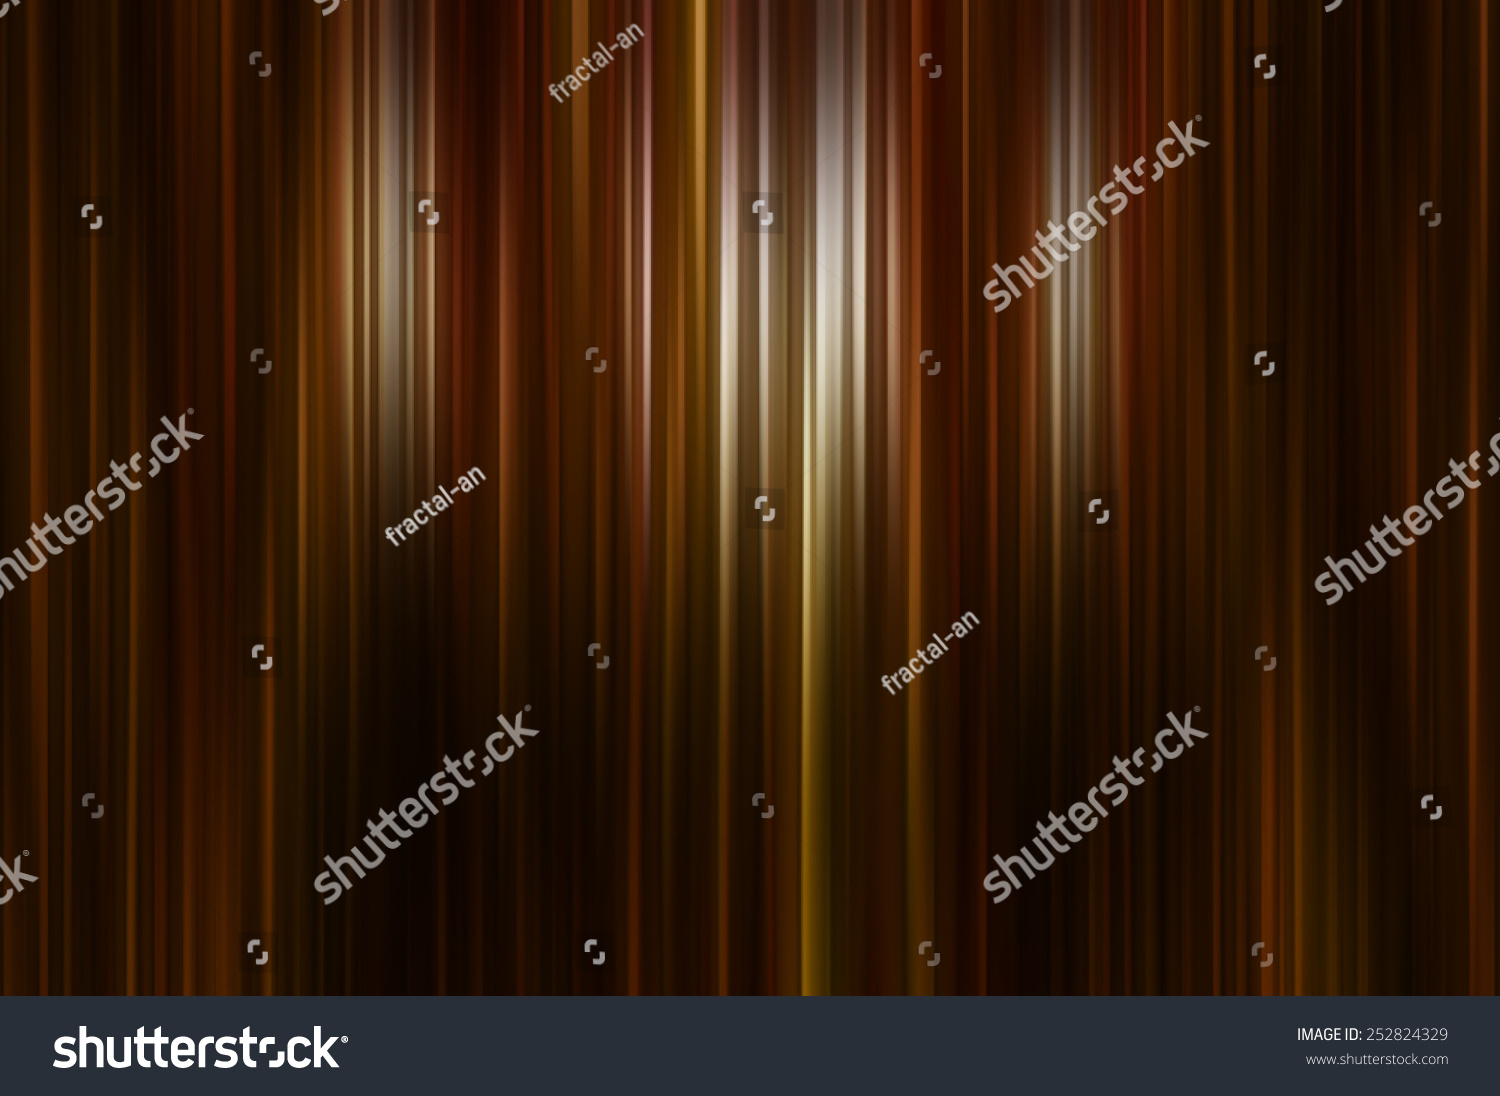 Vertical Line Definition In Art : Abstract brown background vertical lines strips stock